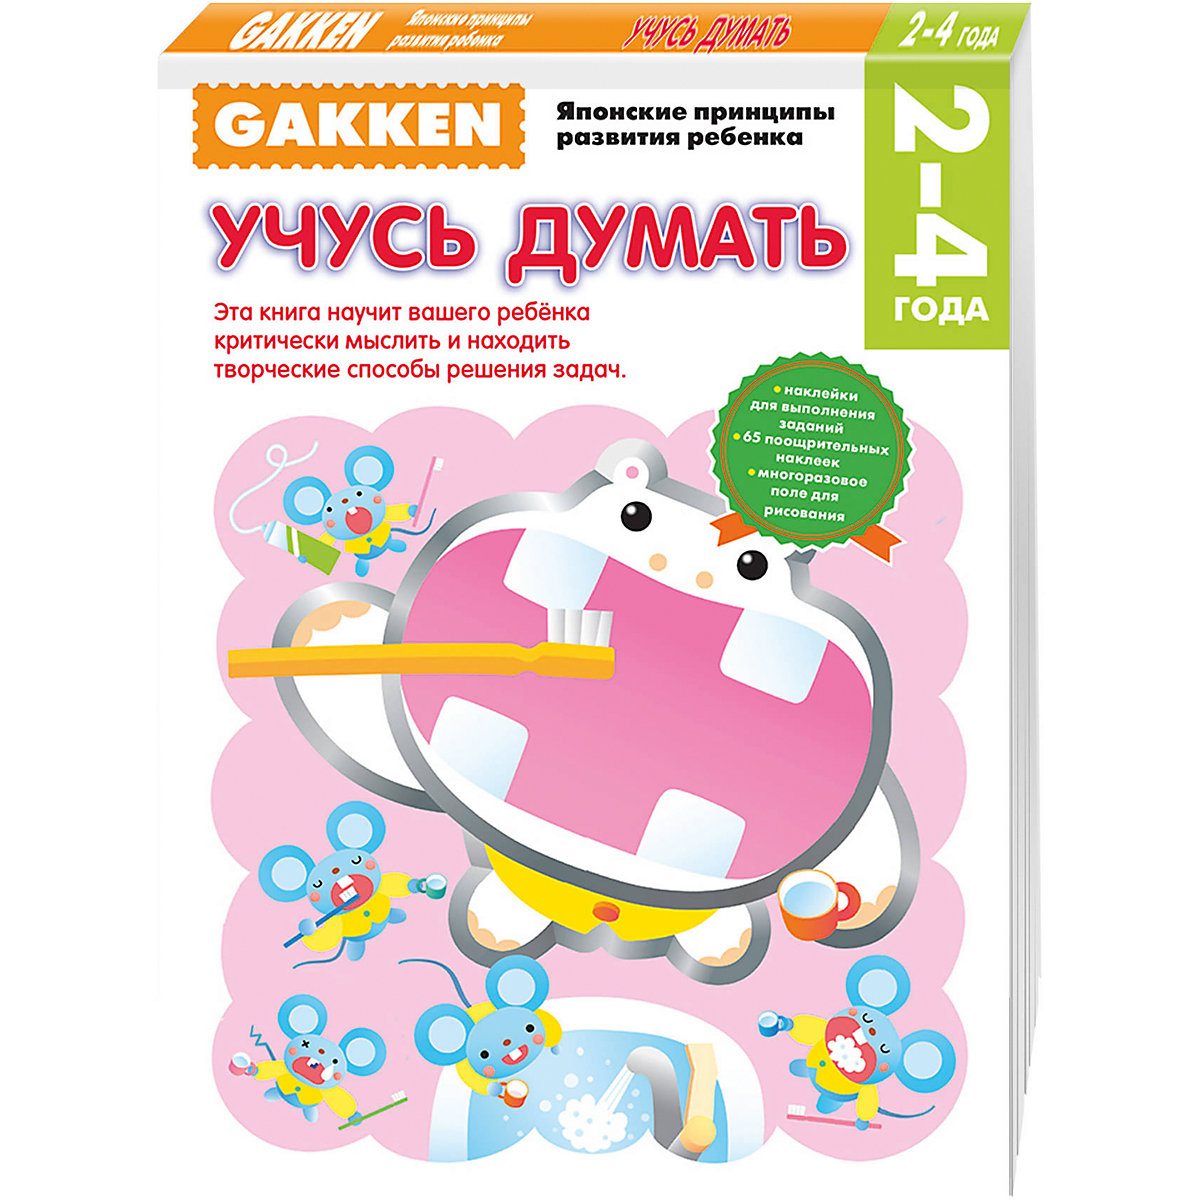 Books EKSMO 4400544 Children Education Encyclopedia Alphabet Dictionary Book For Baby MTpromo